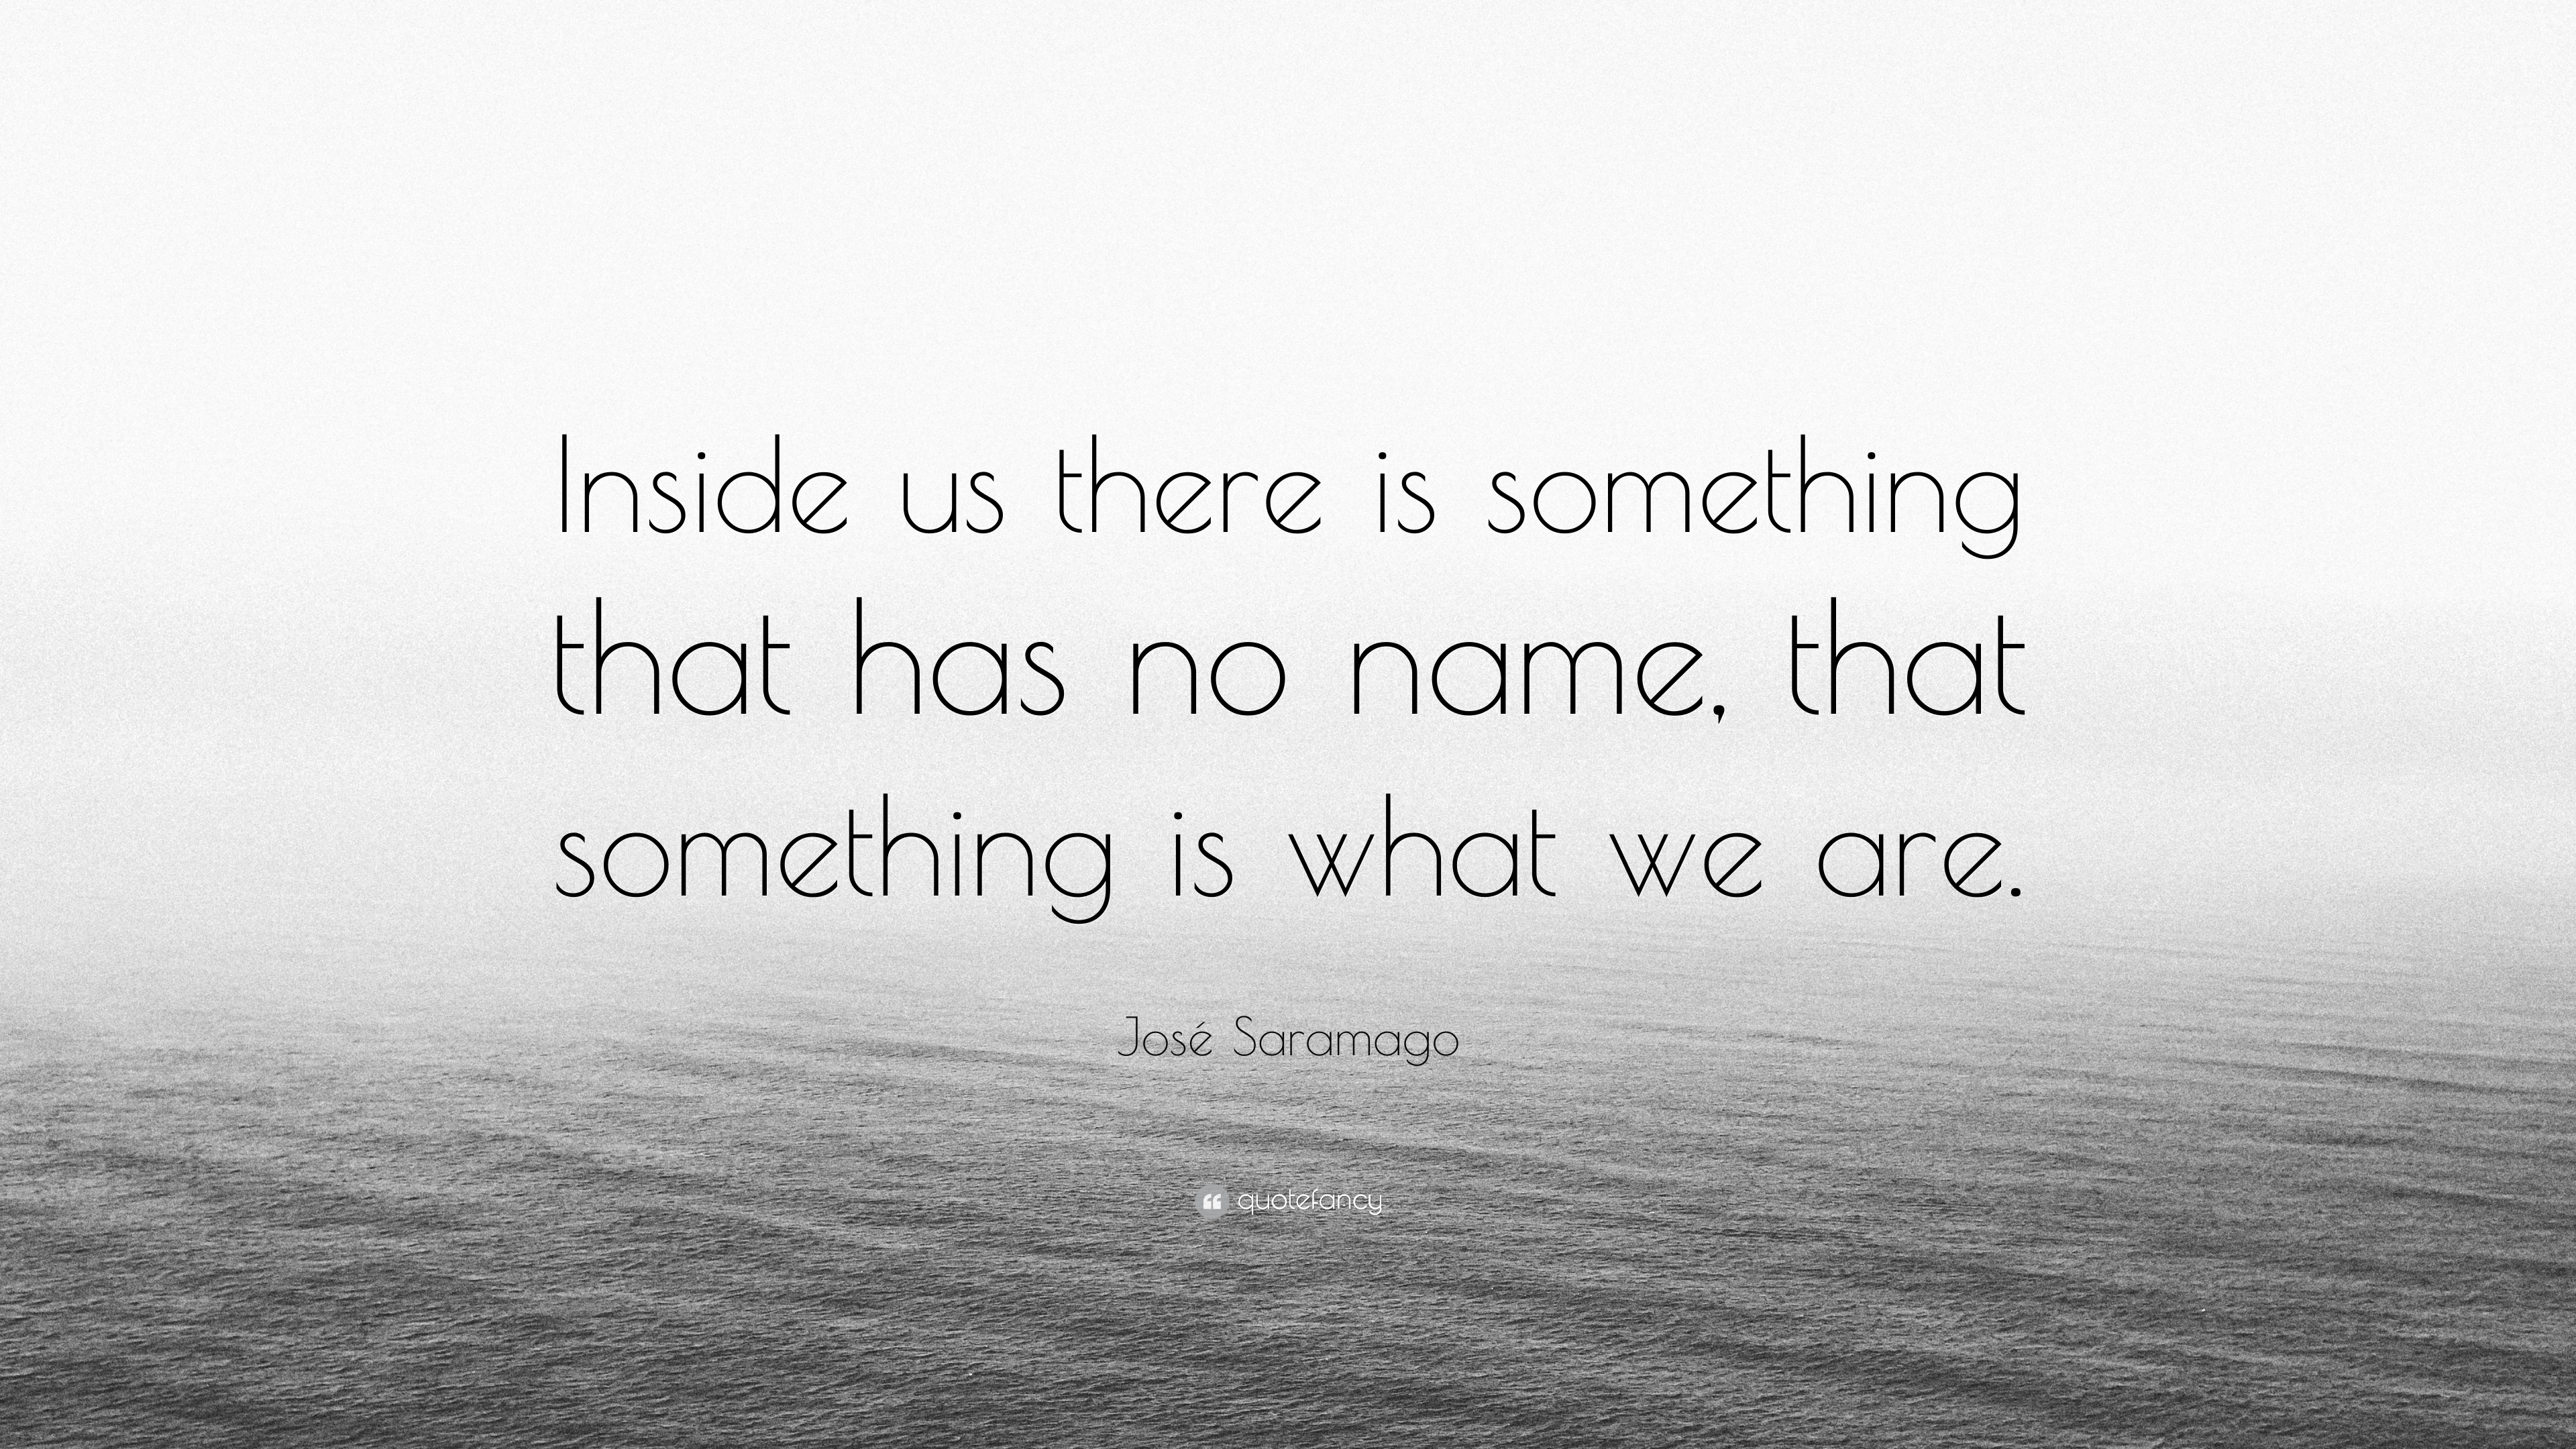 jos u00e9 saramago quote   u201cinside us there is something that has no name  that something is what we